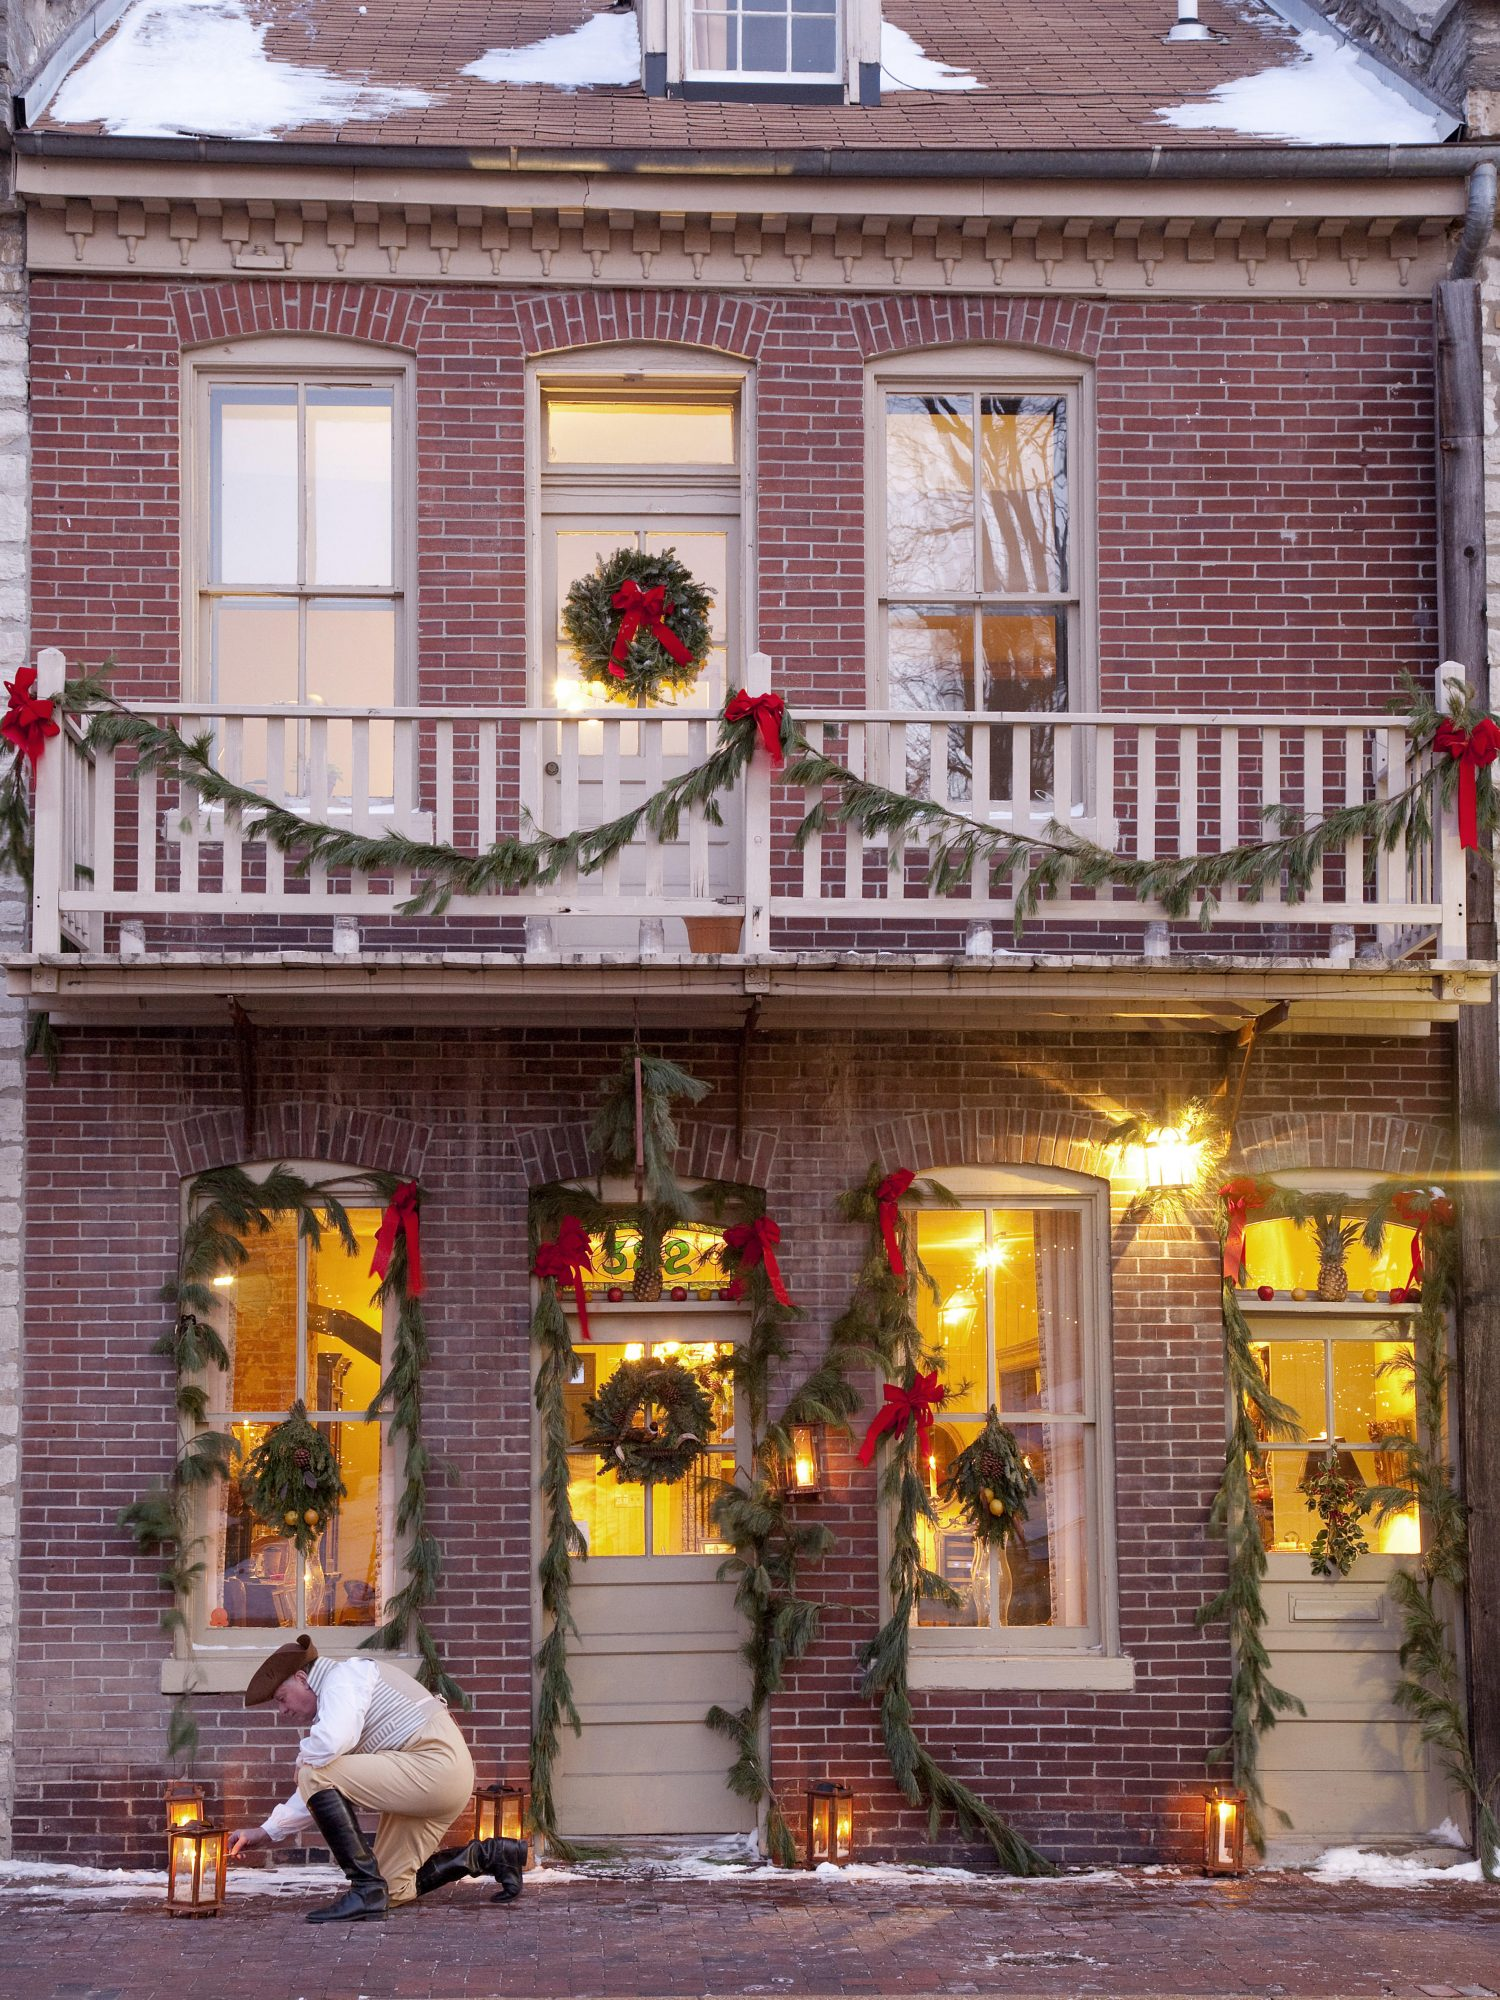 Travel—Holiday Town: St. Charles